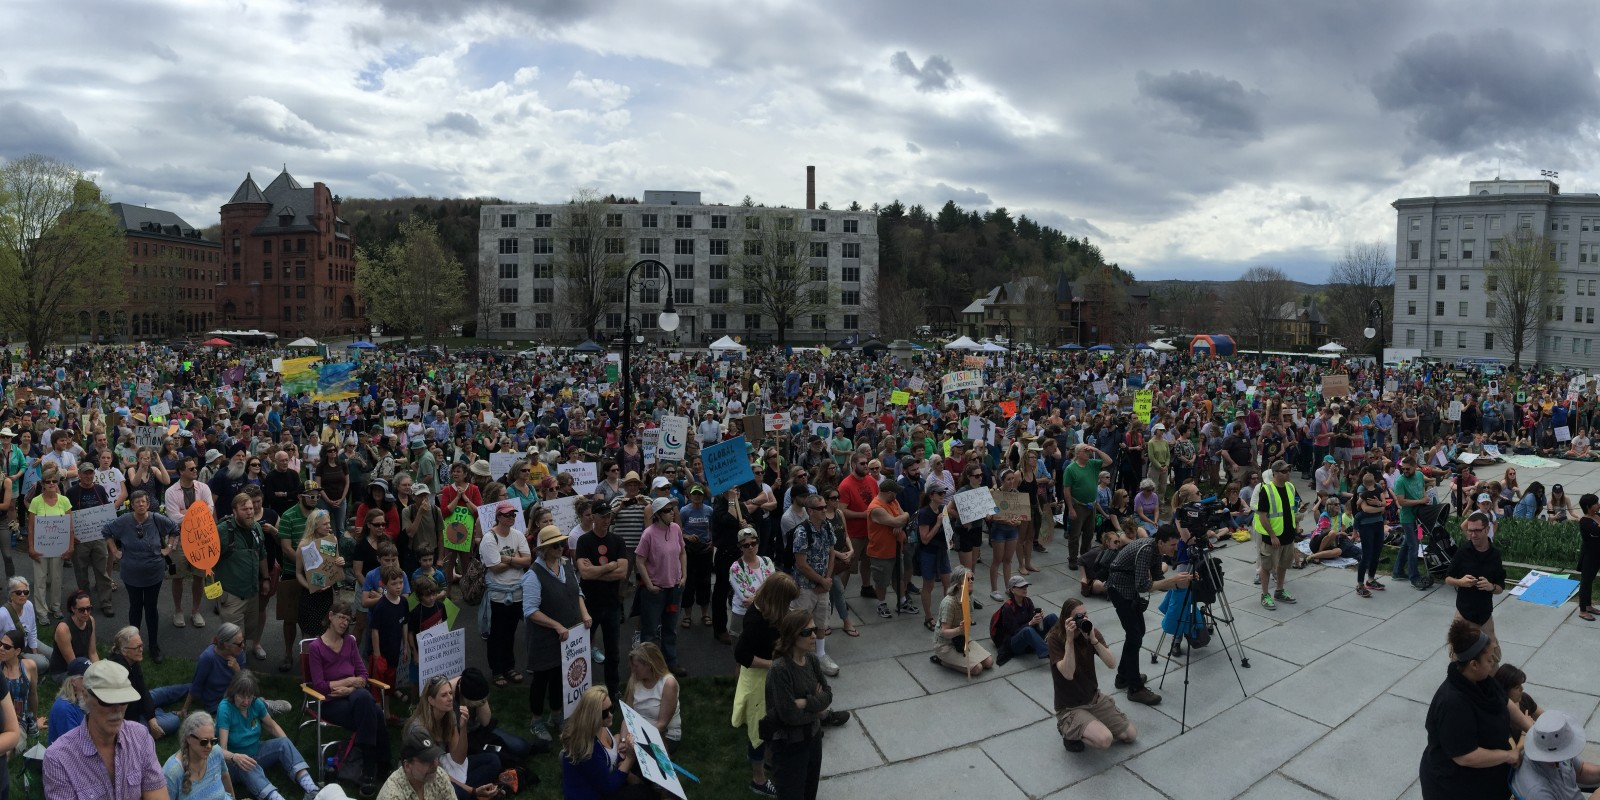 Larry Williams Commentary: Vermont Can Lead the Way in Climate Economy